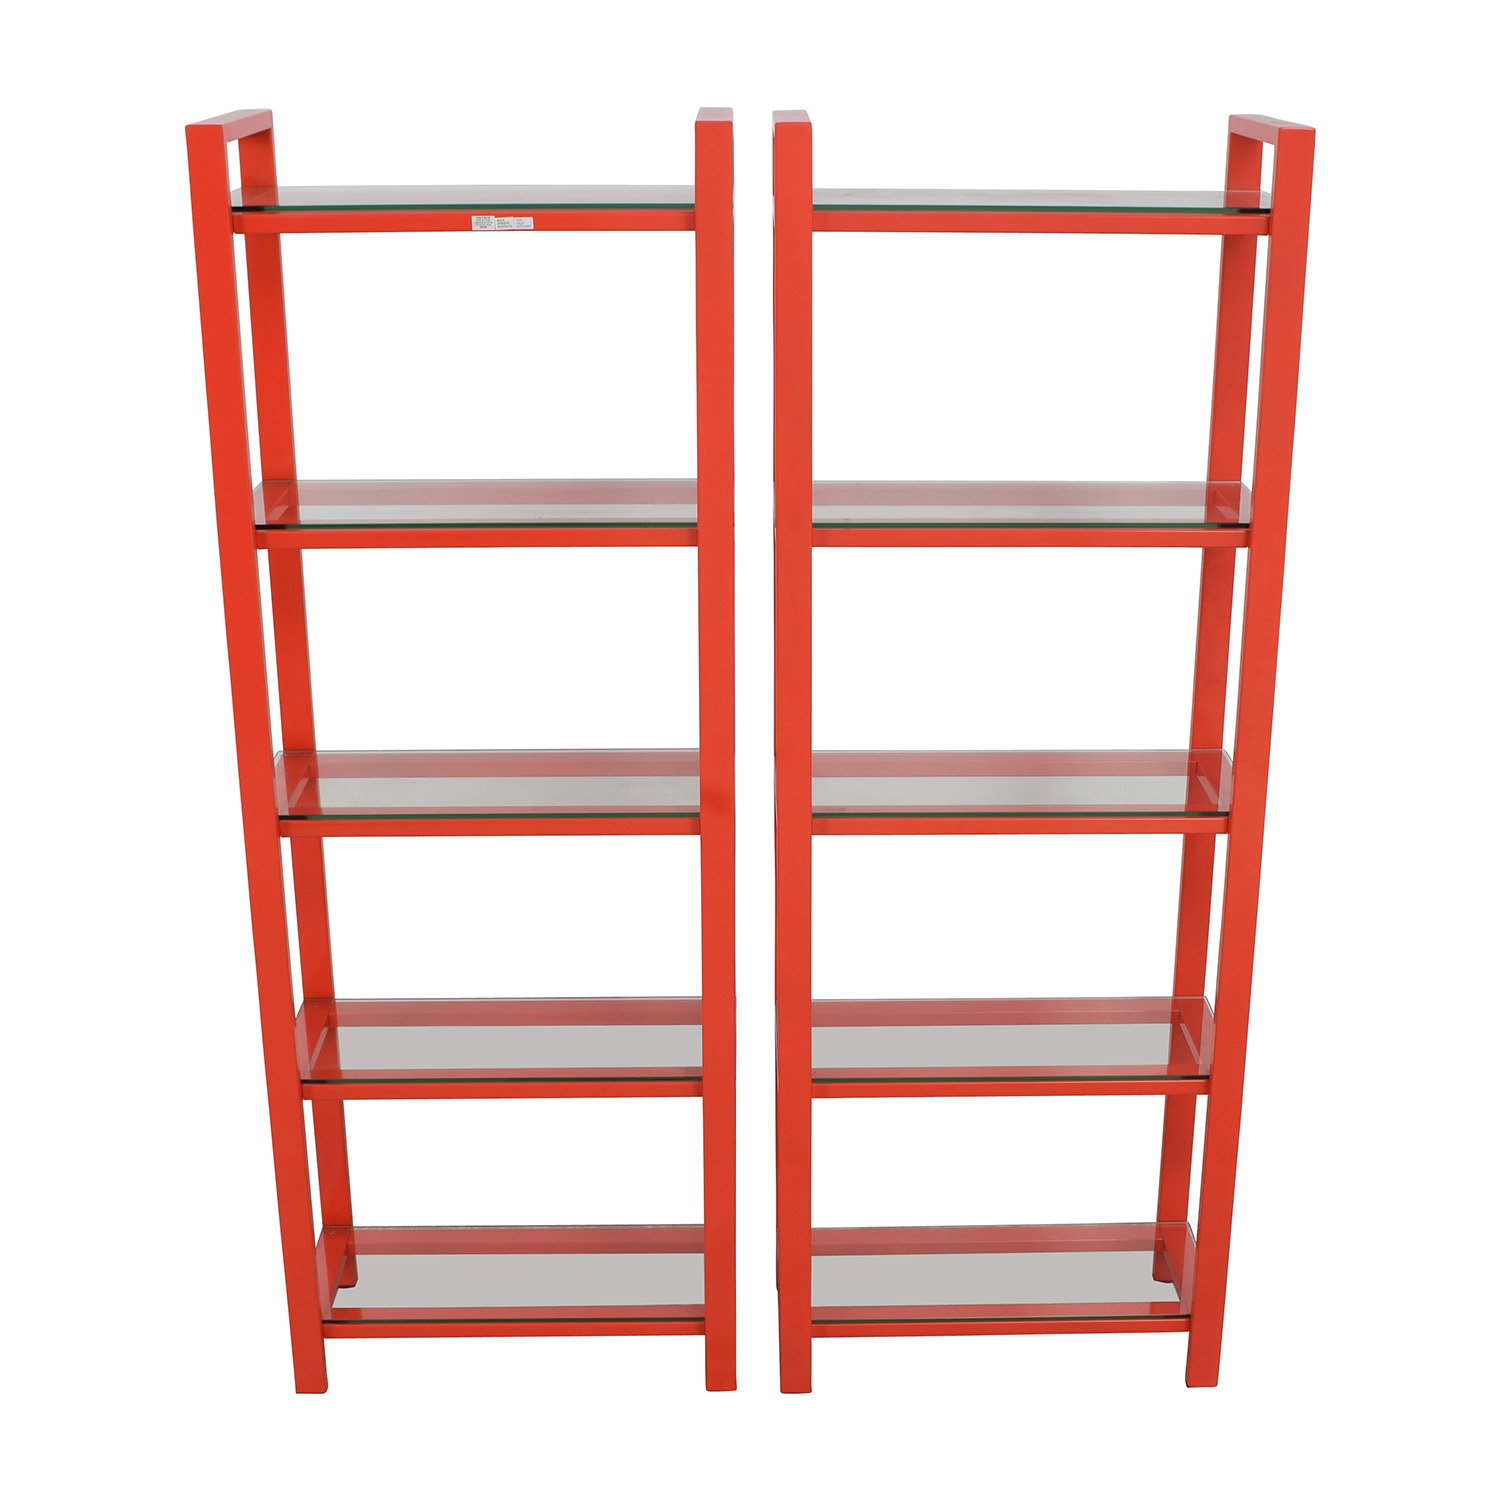 Crate and Barrel Crate & Barrel Pilsen Red Bookshelves